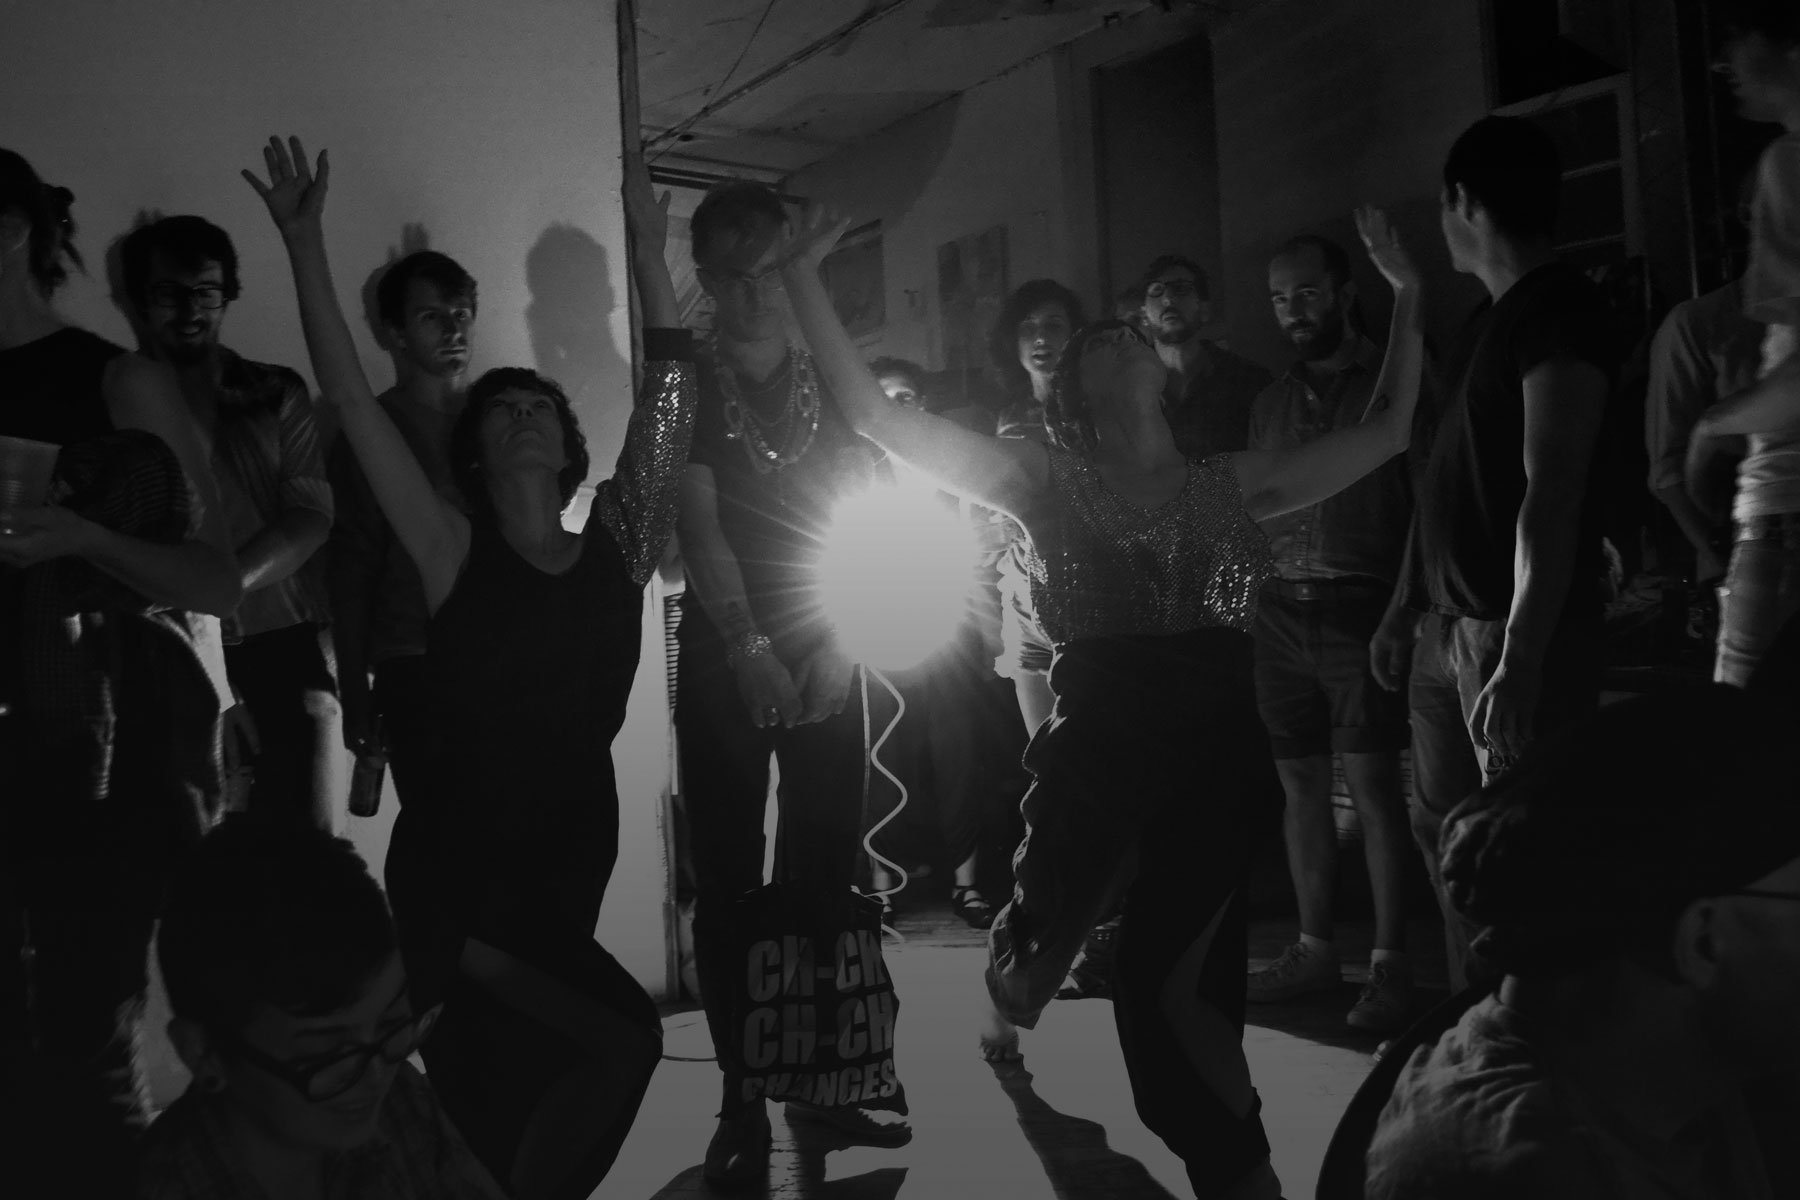 aunts is dance image in black and white people dancing in a room